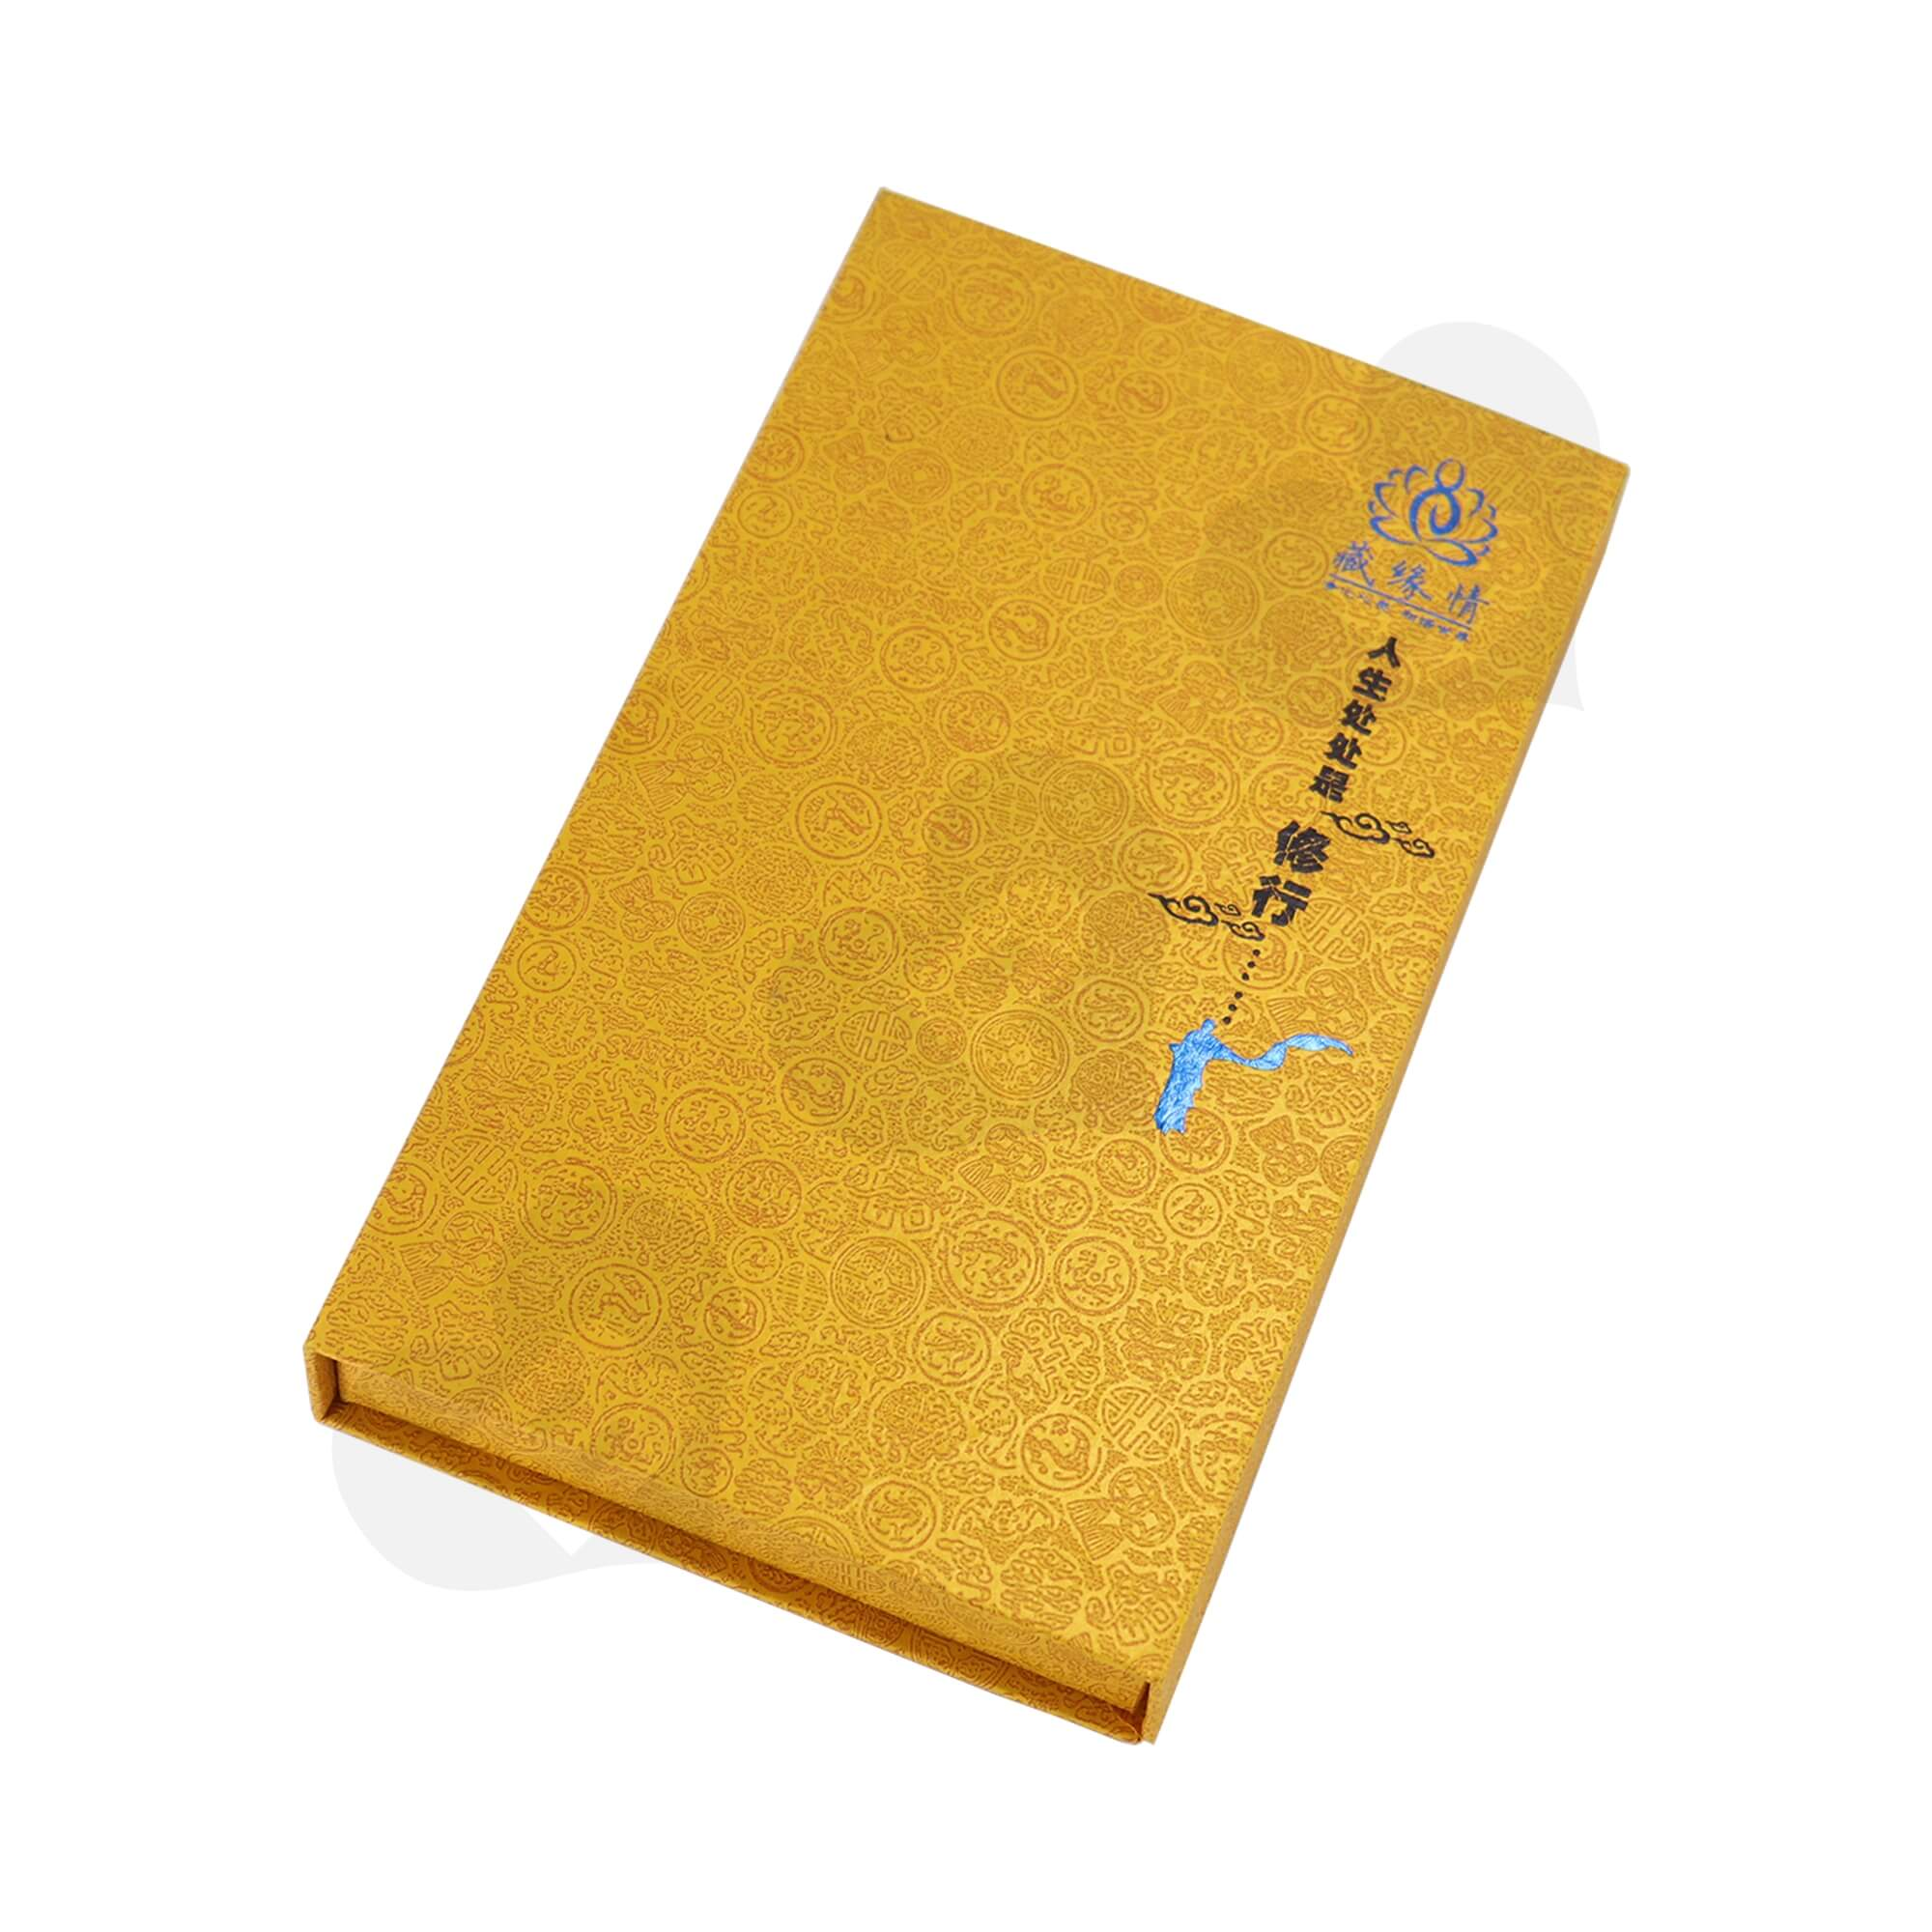 Book Shape Gift Box For Packing Blended Fragrance Side View Three